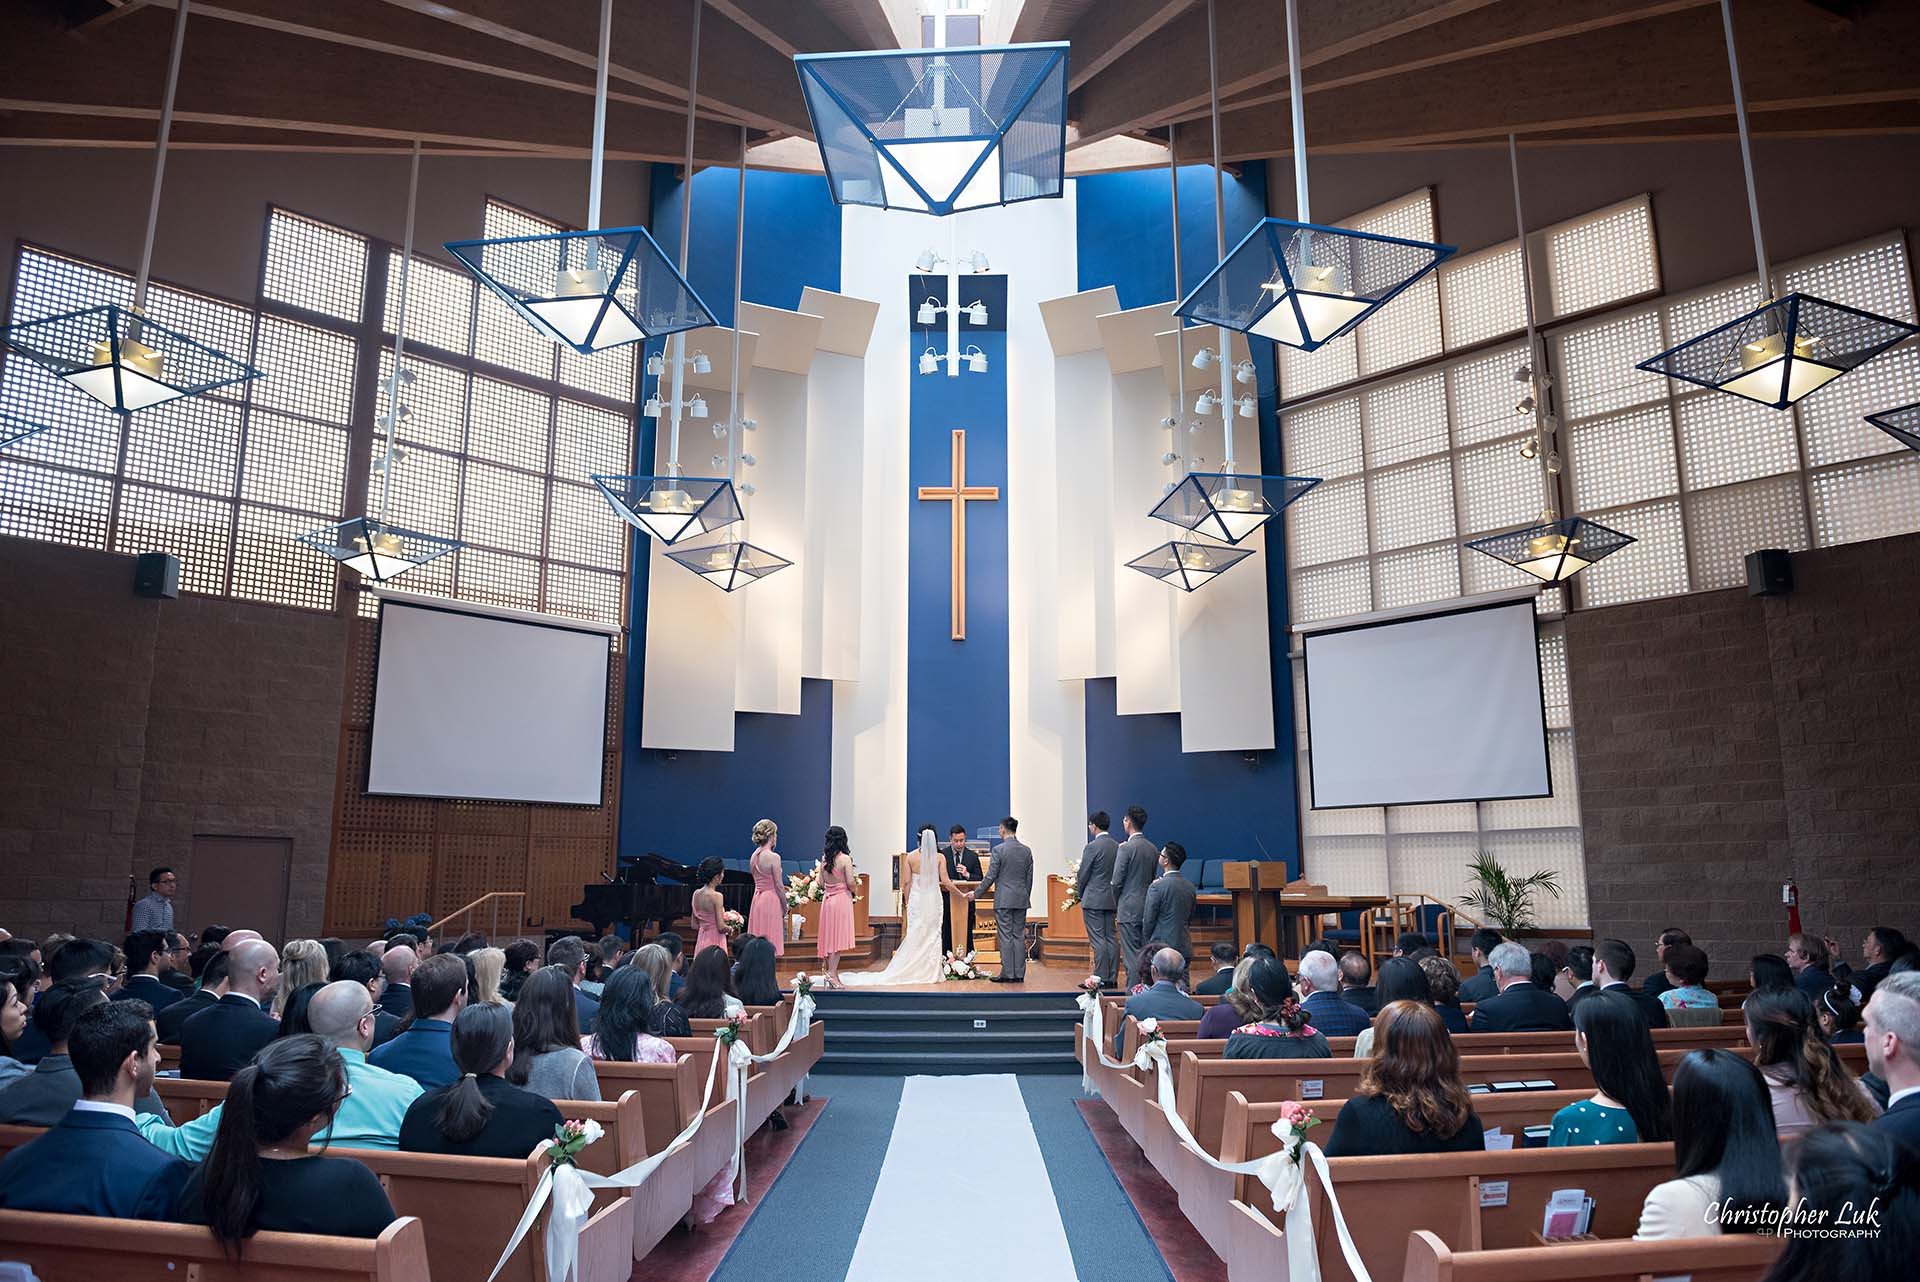 Christopher Luk Toronto Wedding Photographer Trinity York Mills Church Ceremony Sanctuary Candid Natural Photojournalistic Groom Bride Landscape Wide